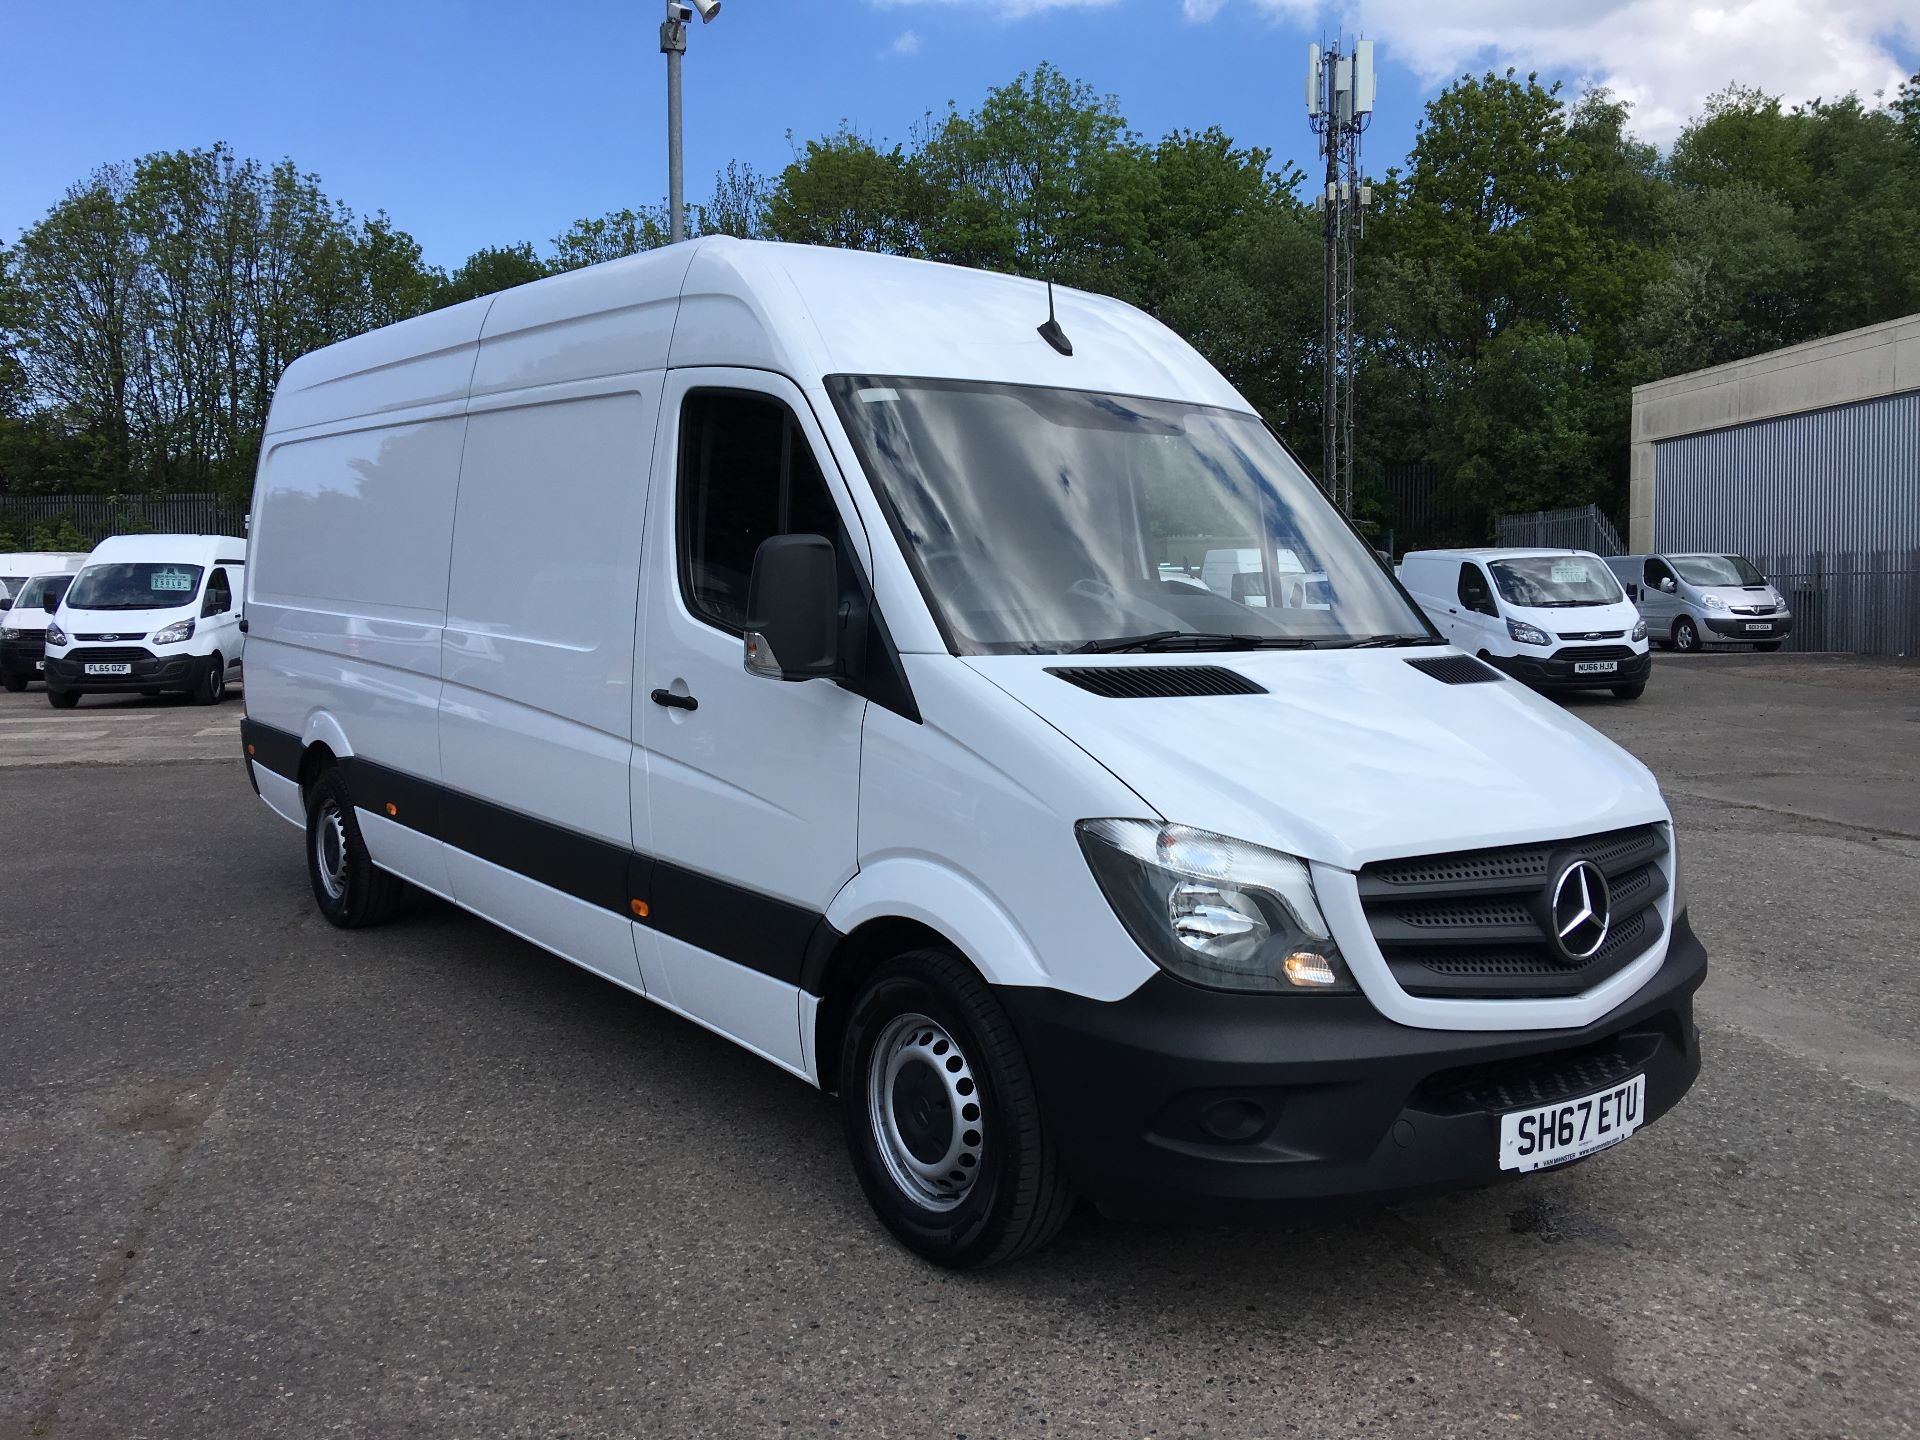 2017 Mercedes-Benz Sprinter 314 LWB HIGH ROOF VAN EURO 6 (SH67ETU)